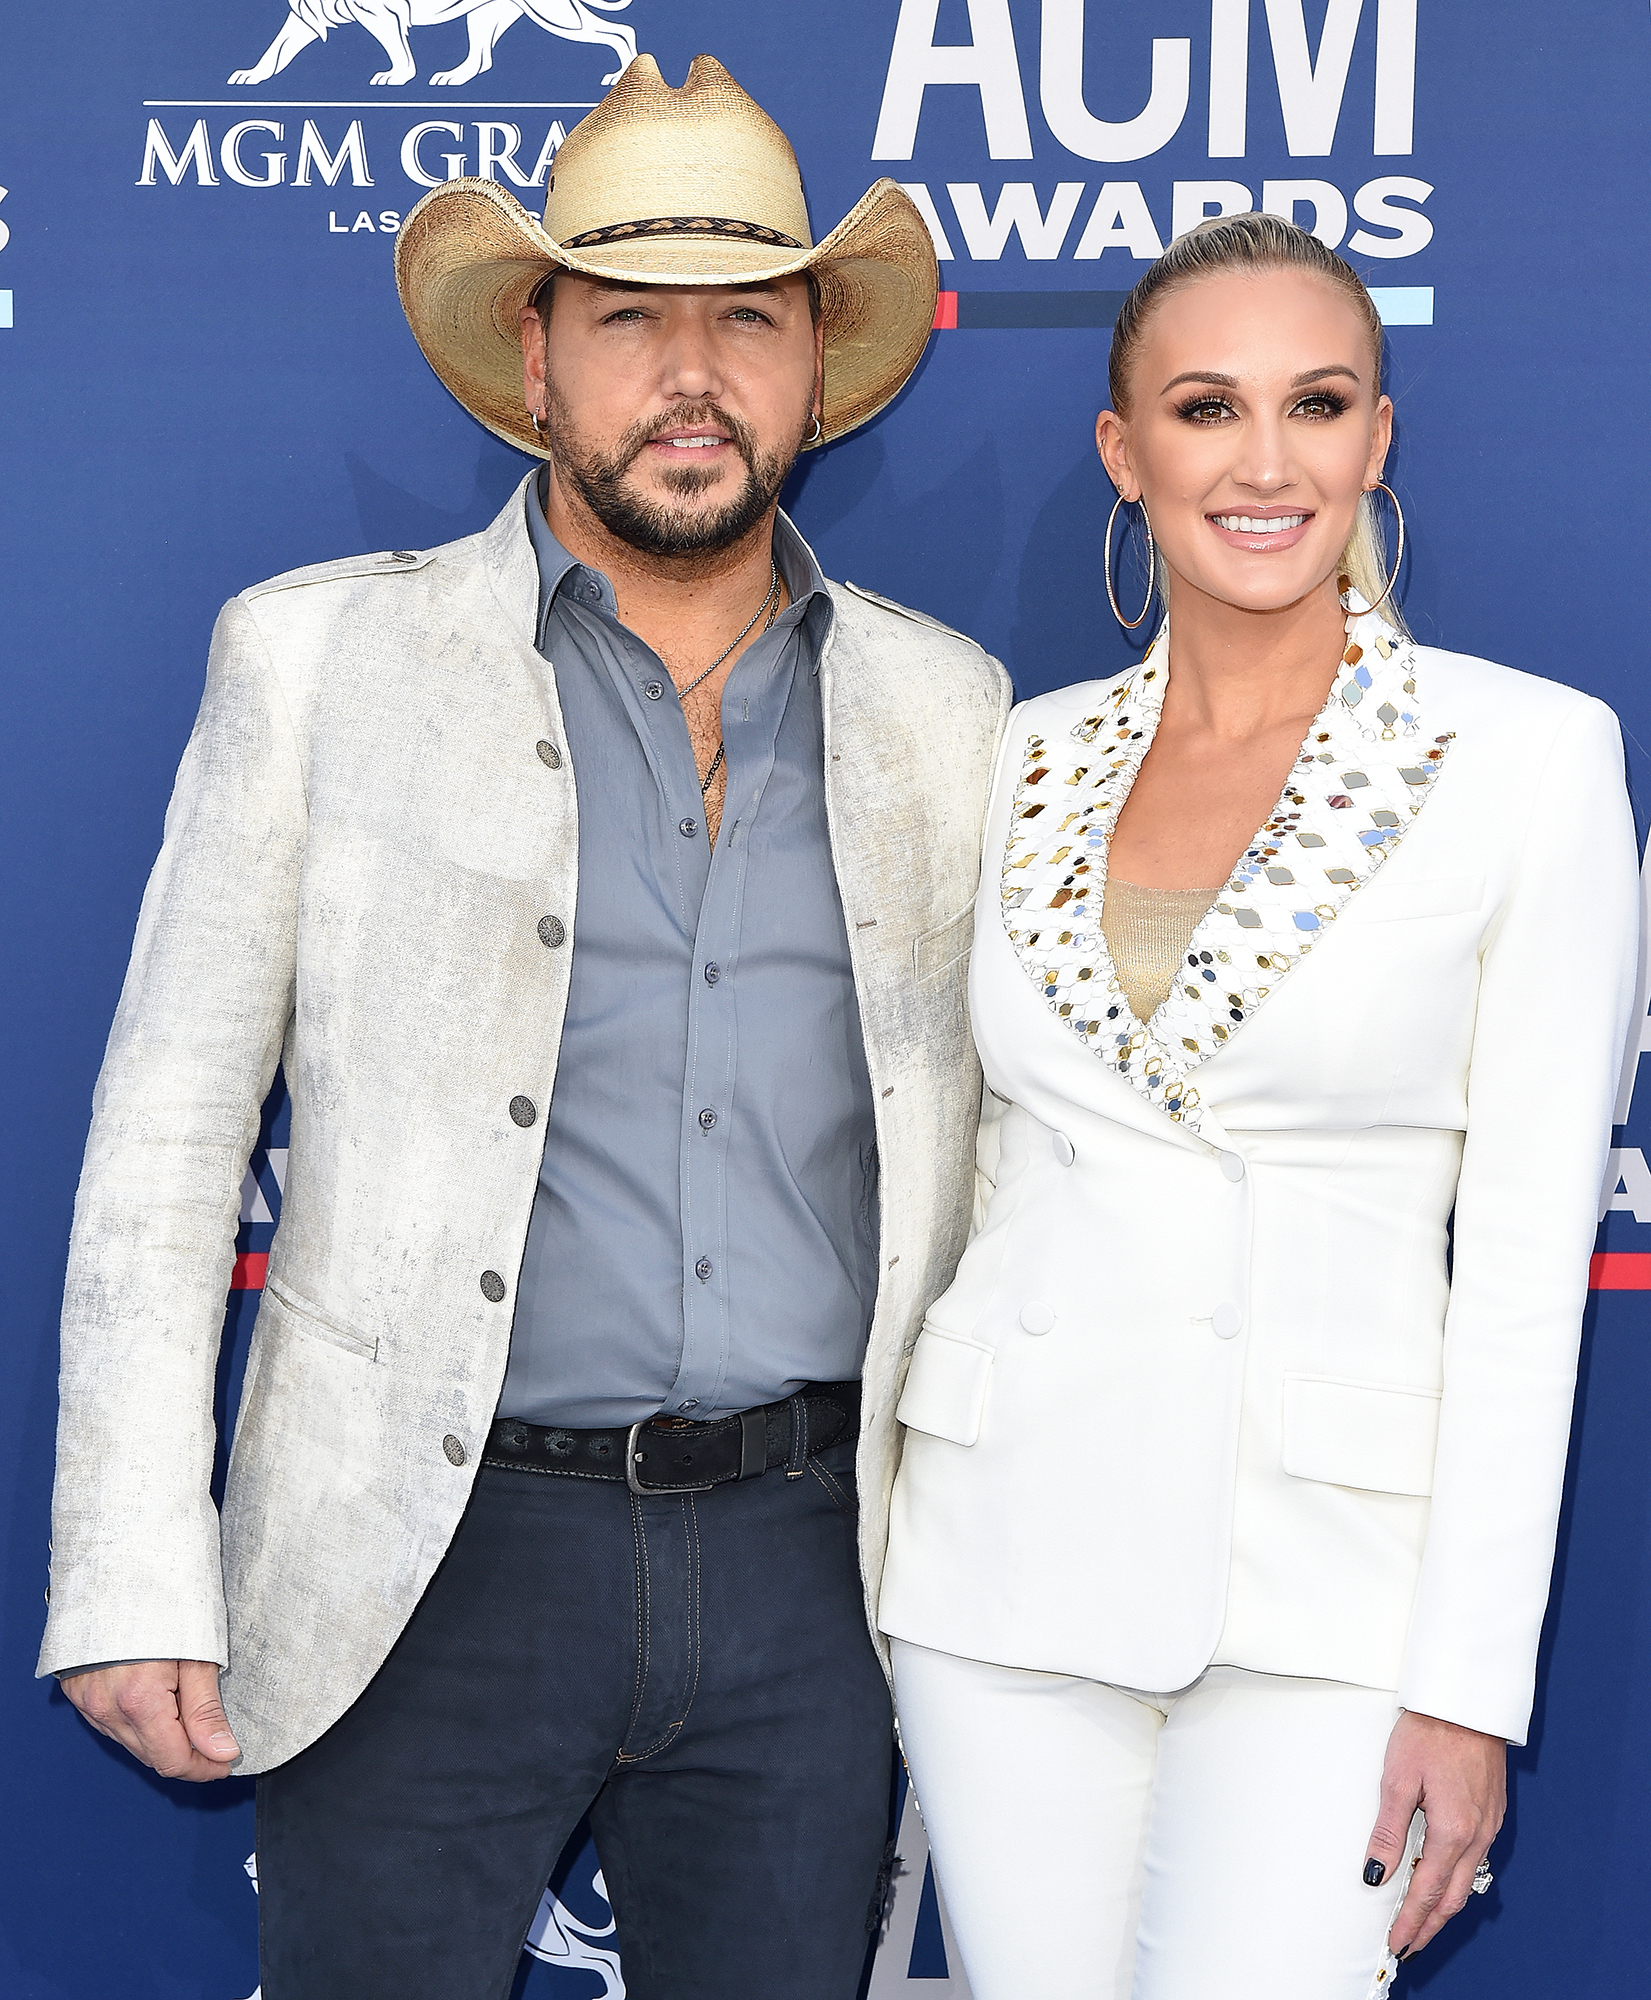 Jason Aldean Brittany Kerr Stepmom Tough - Jason Aldean and Brittany Aldean attend the 54th Academy of Country Music Awards at MGM Grand Garden Arena on April 07, 2019 in Las Vegas, Nevada.